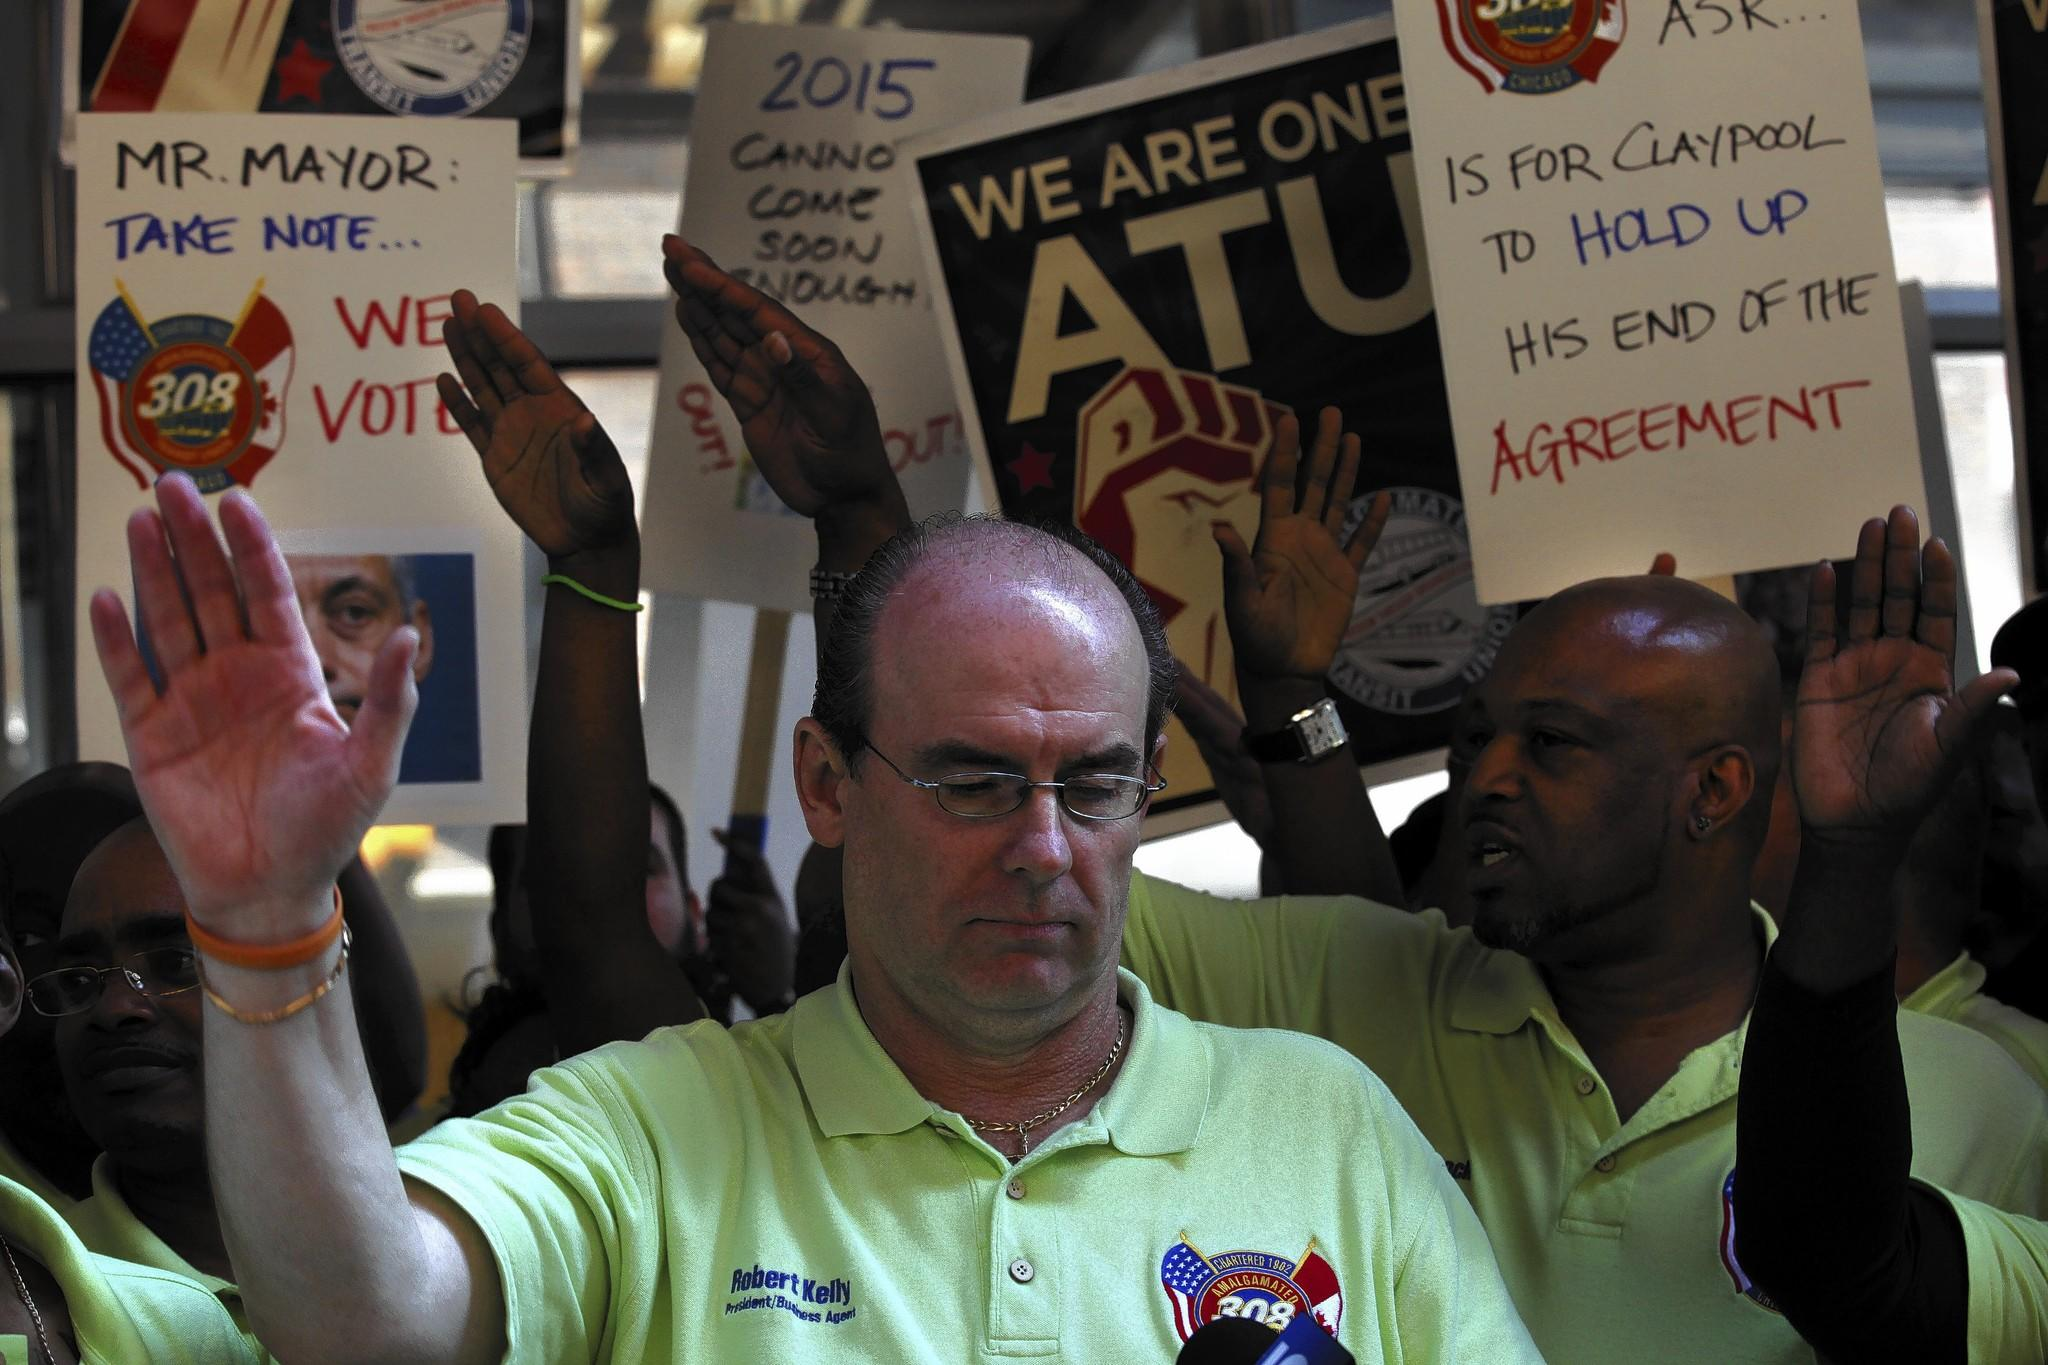 Local 308 President Robert Kelly contends everything's on the up and up.